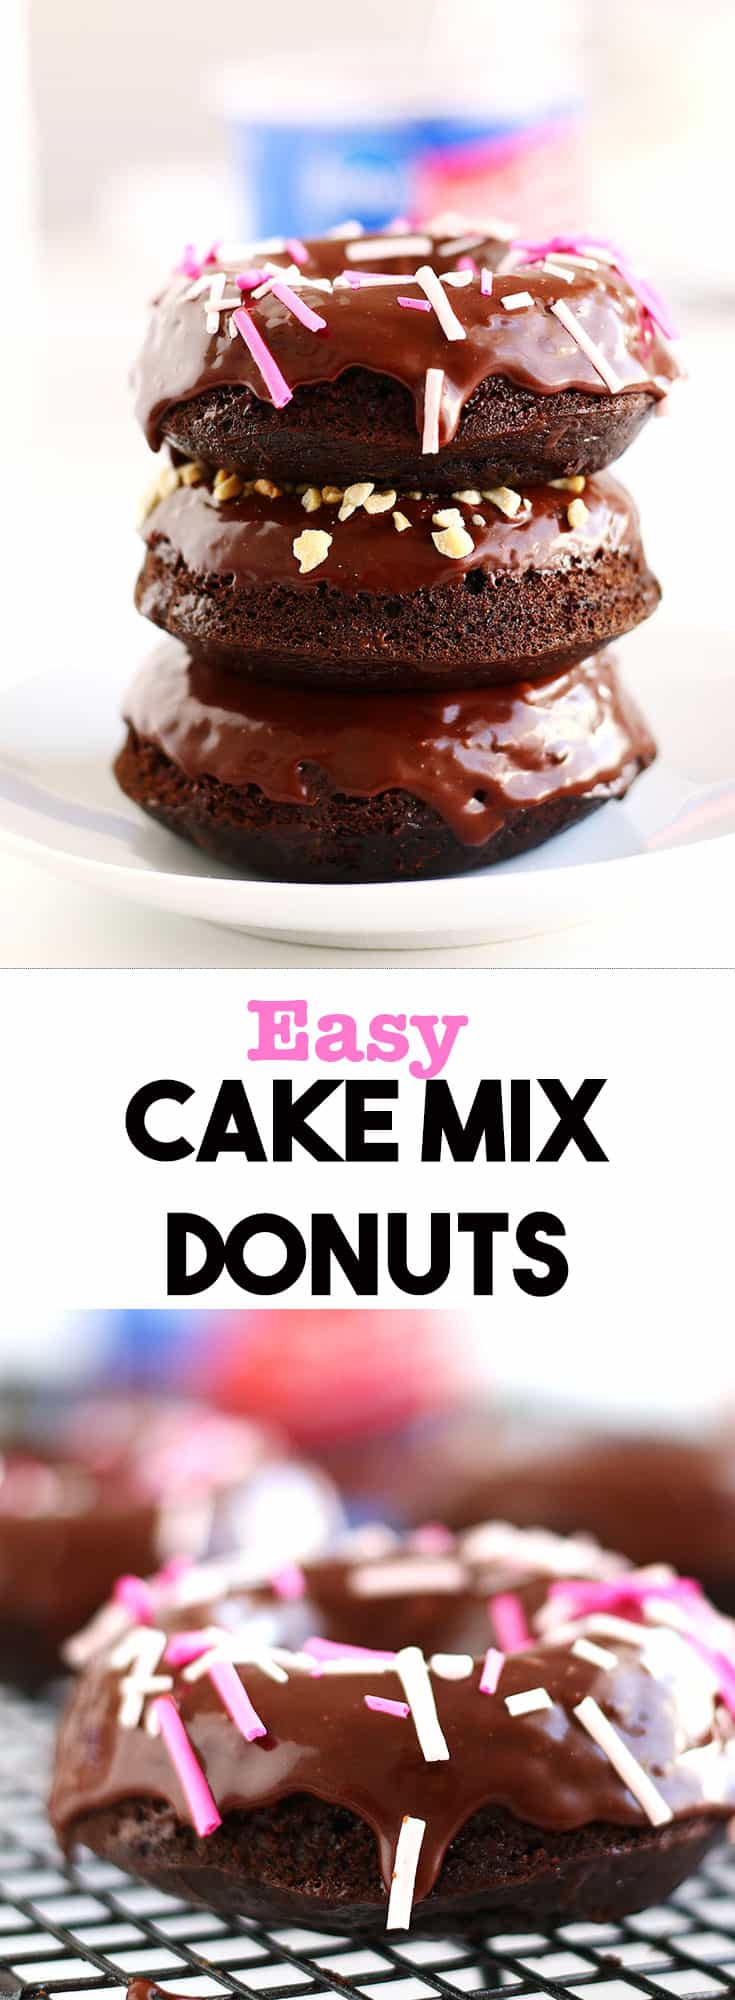 These Easy Cake Mix Donuts can be whipped up in a couple of minutes. They are moist, fluffy and so incredibly chocolatey. The perfect homemade dessert.